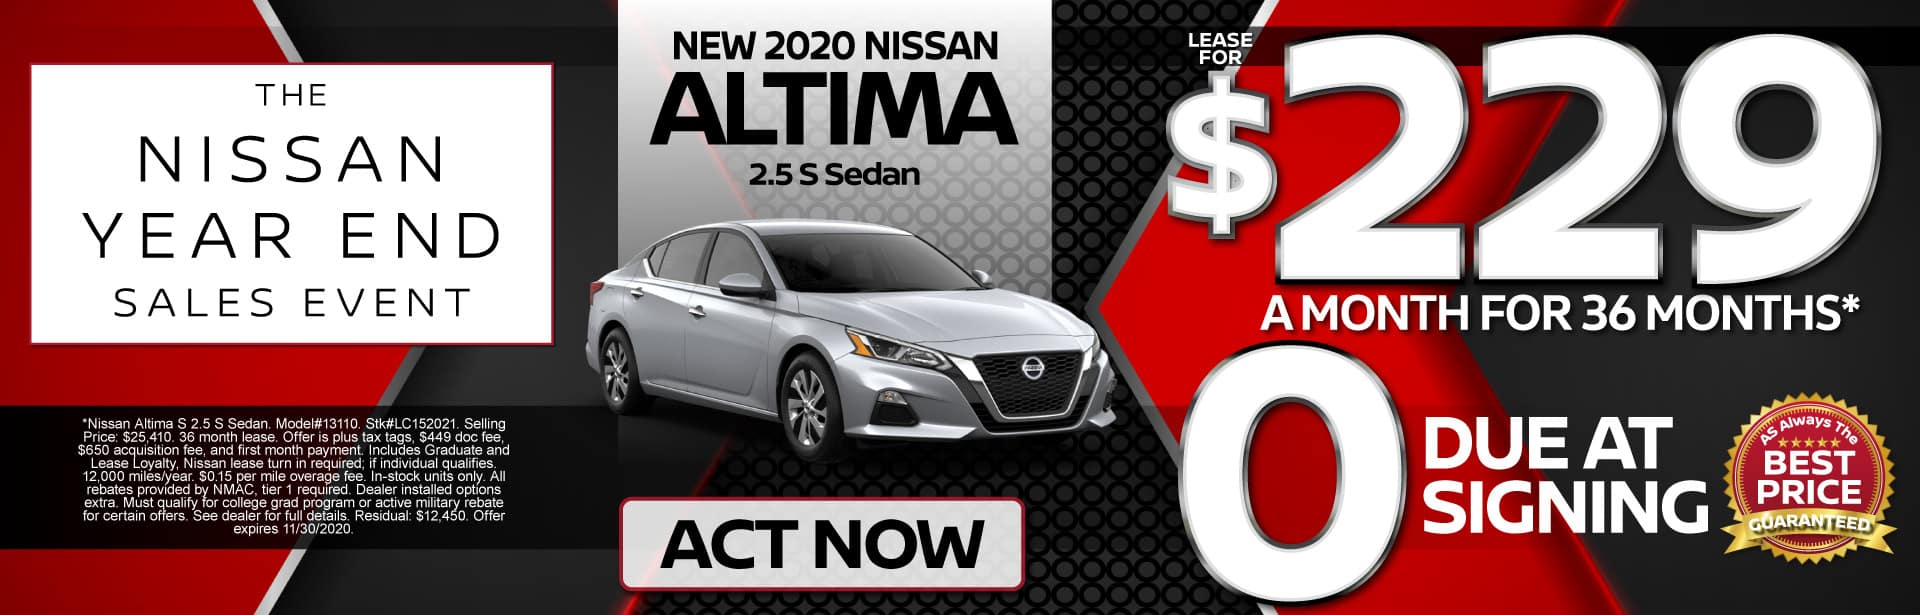 New 2020 Altima Lease for $229 a month for 36 months | Act Now